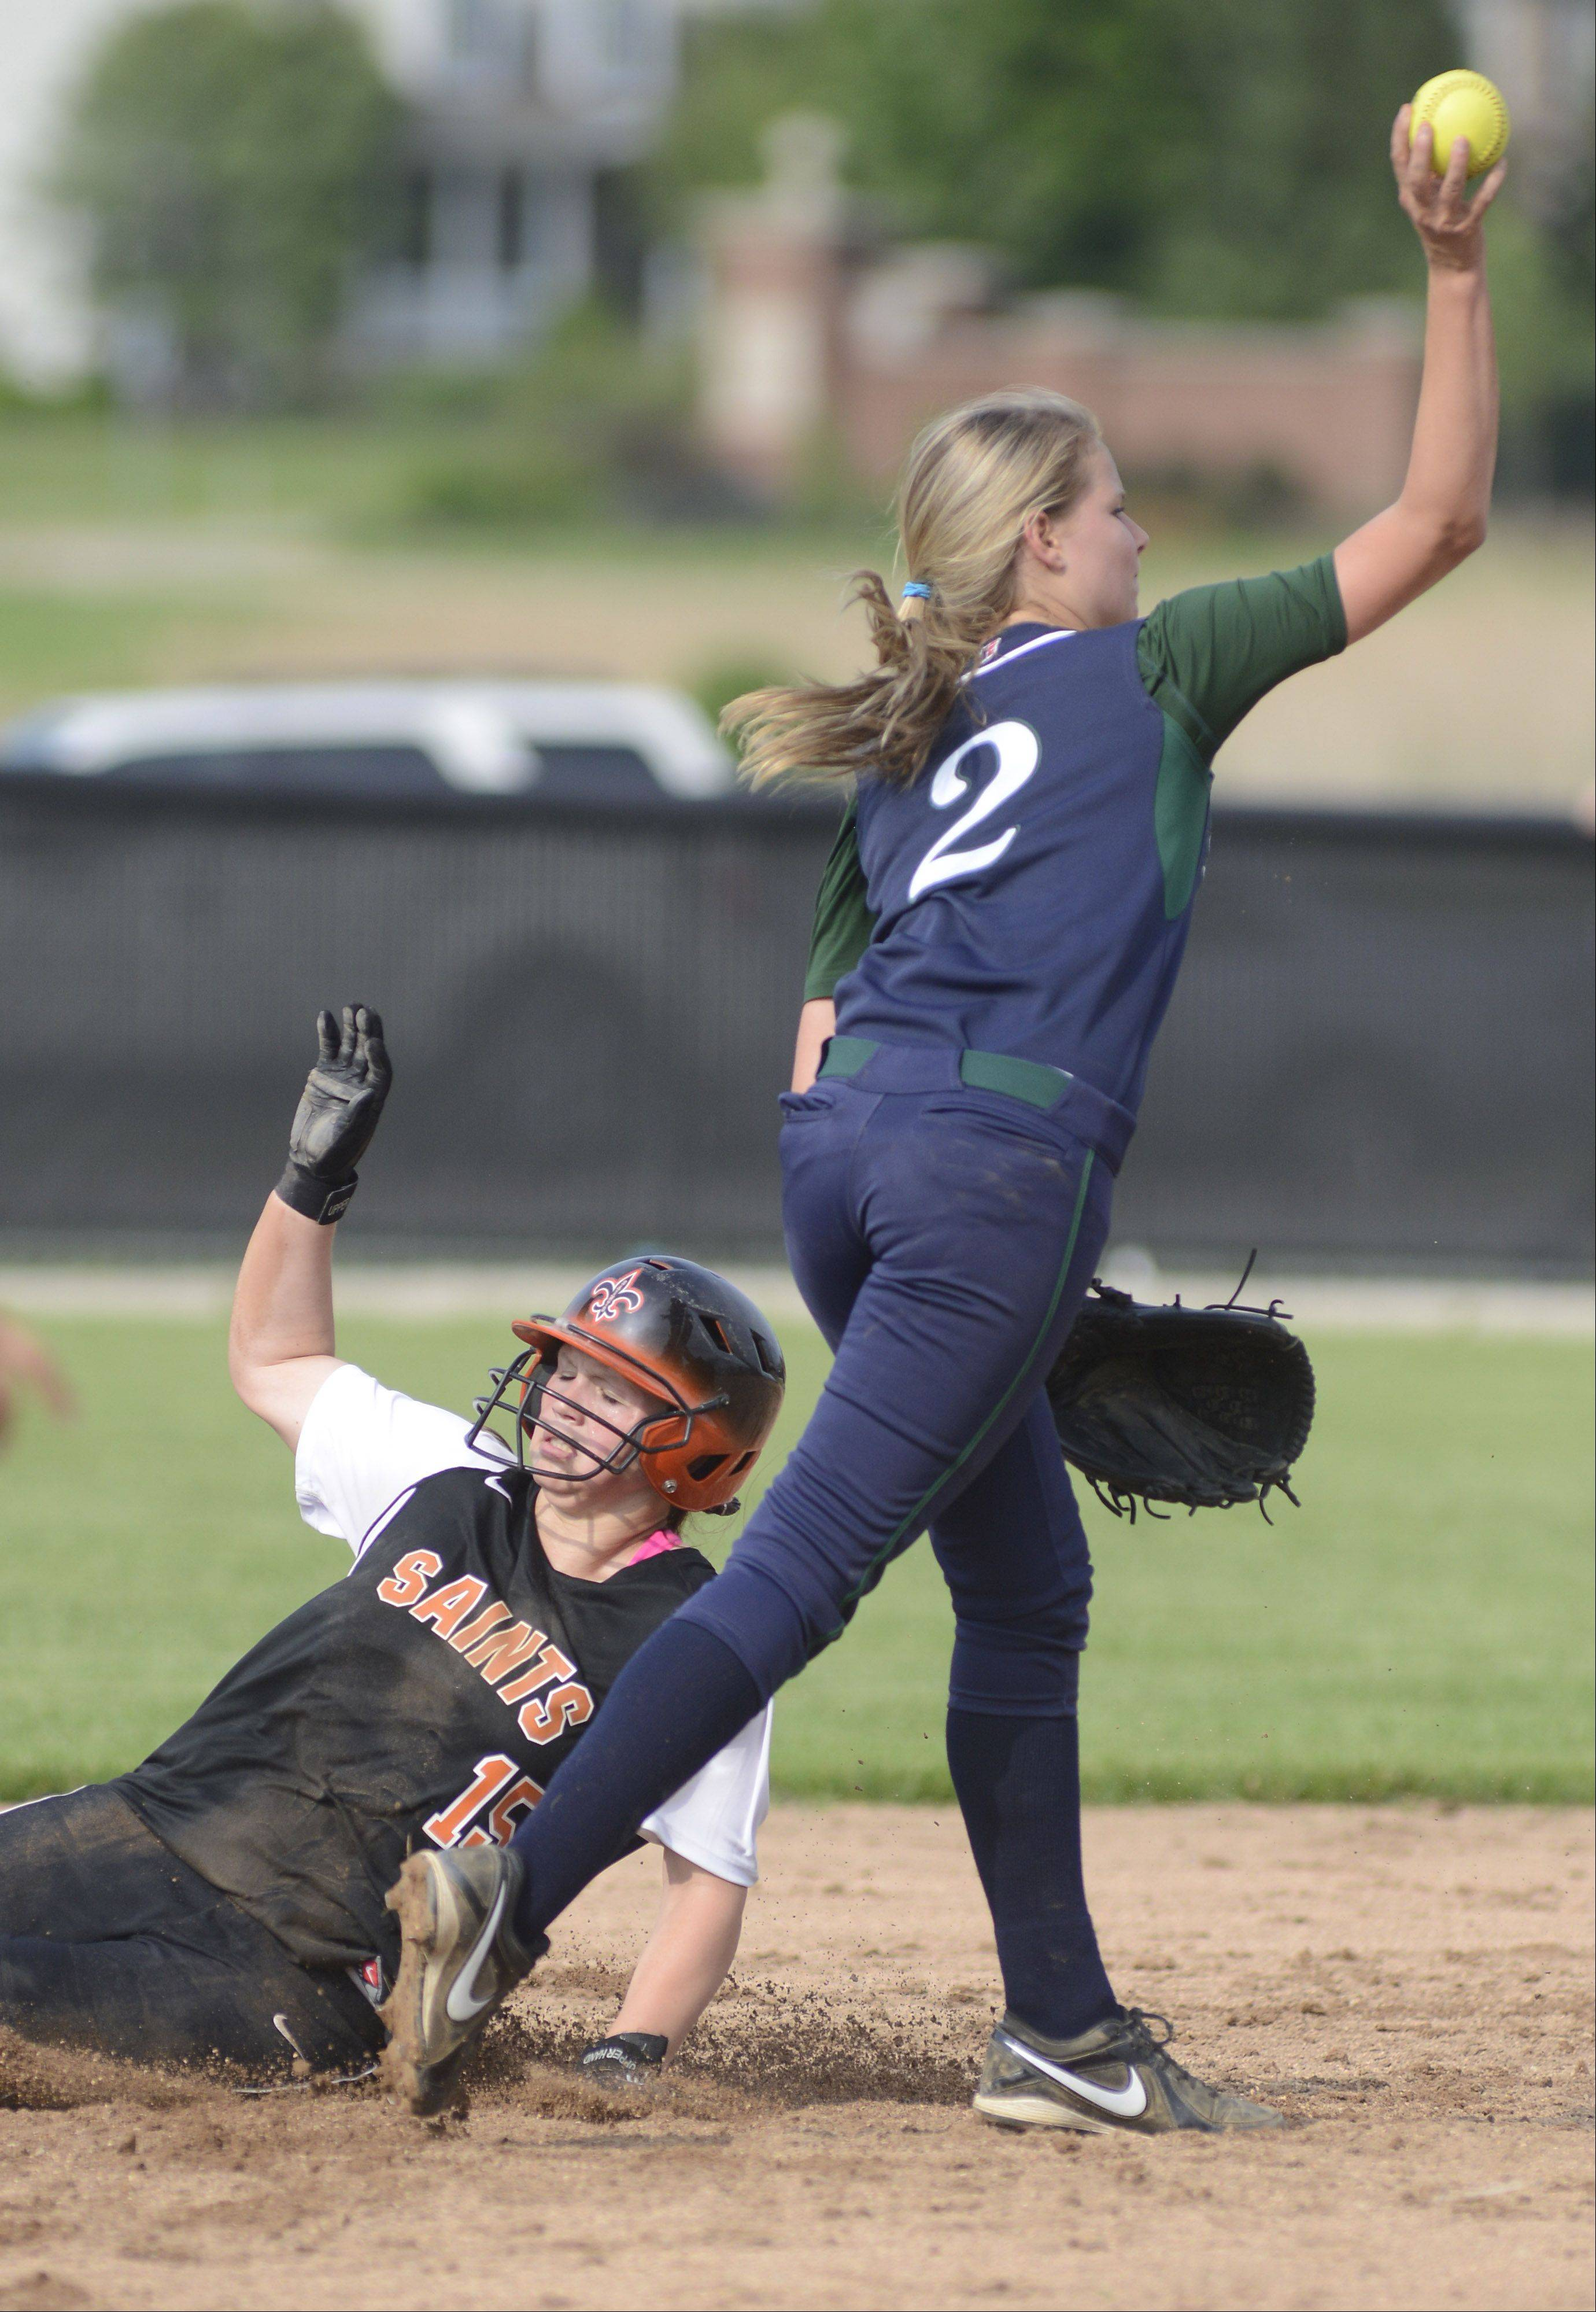 St. Charles East's Alex Latoria is tagged out at second base by Bartlett's Kathryn Fornoff in the third inning of the Class 4A sectional on Tuesday.